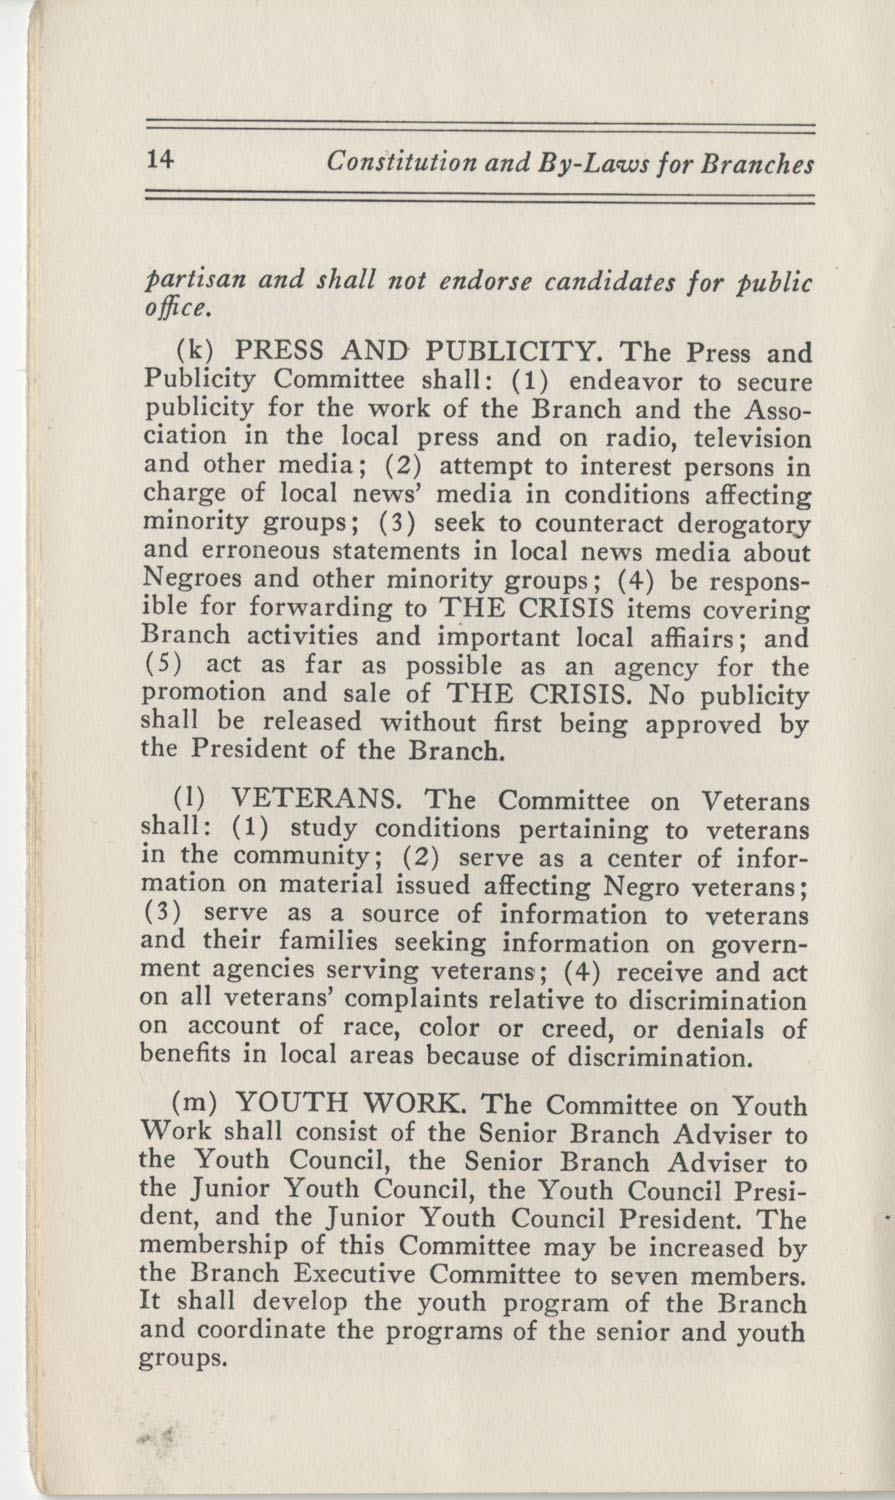 Constitutions and By-Laws, September 1960, Page 14